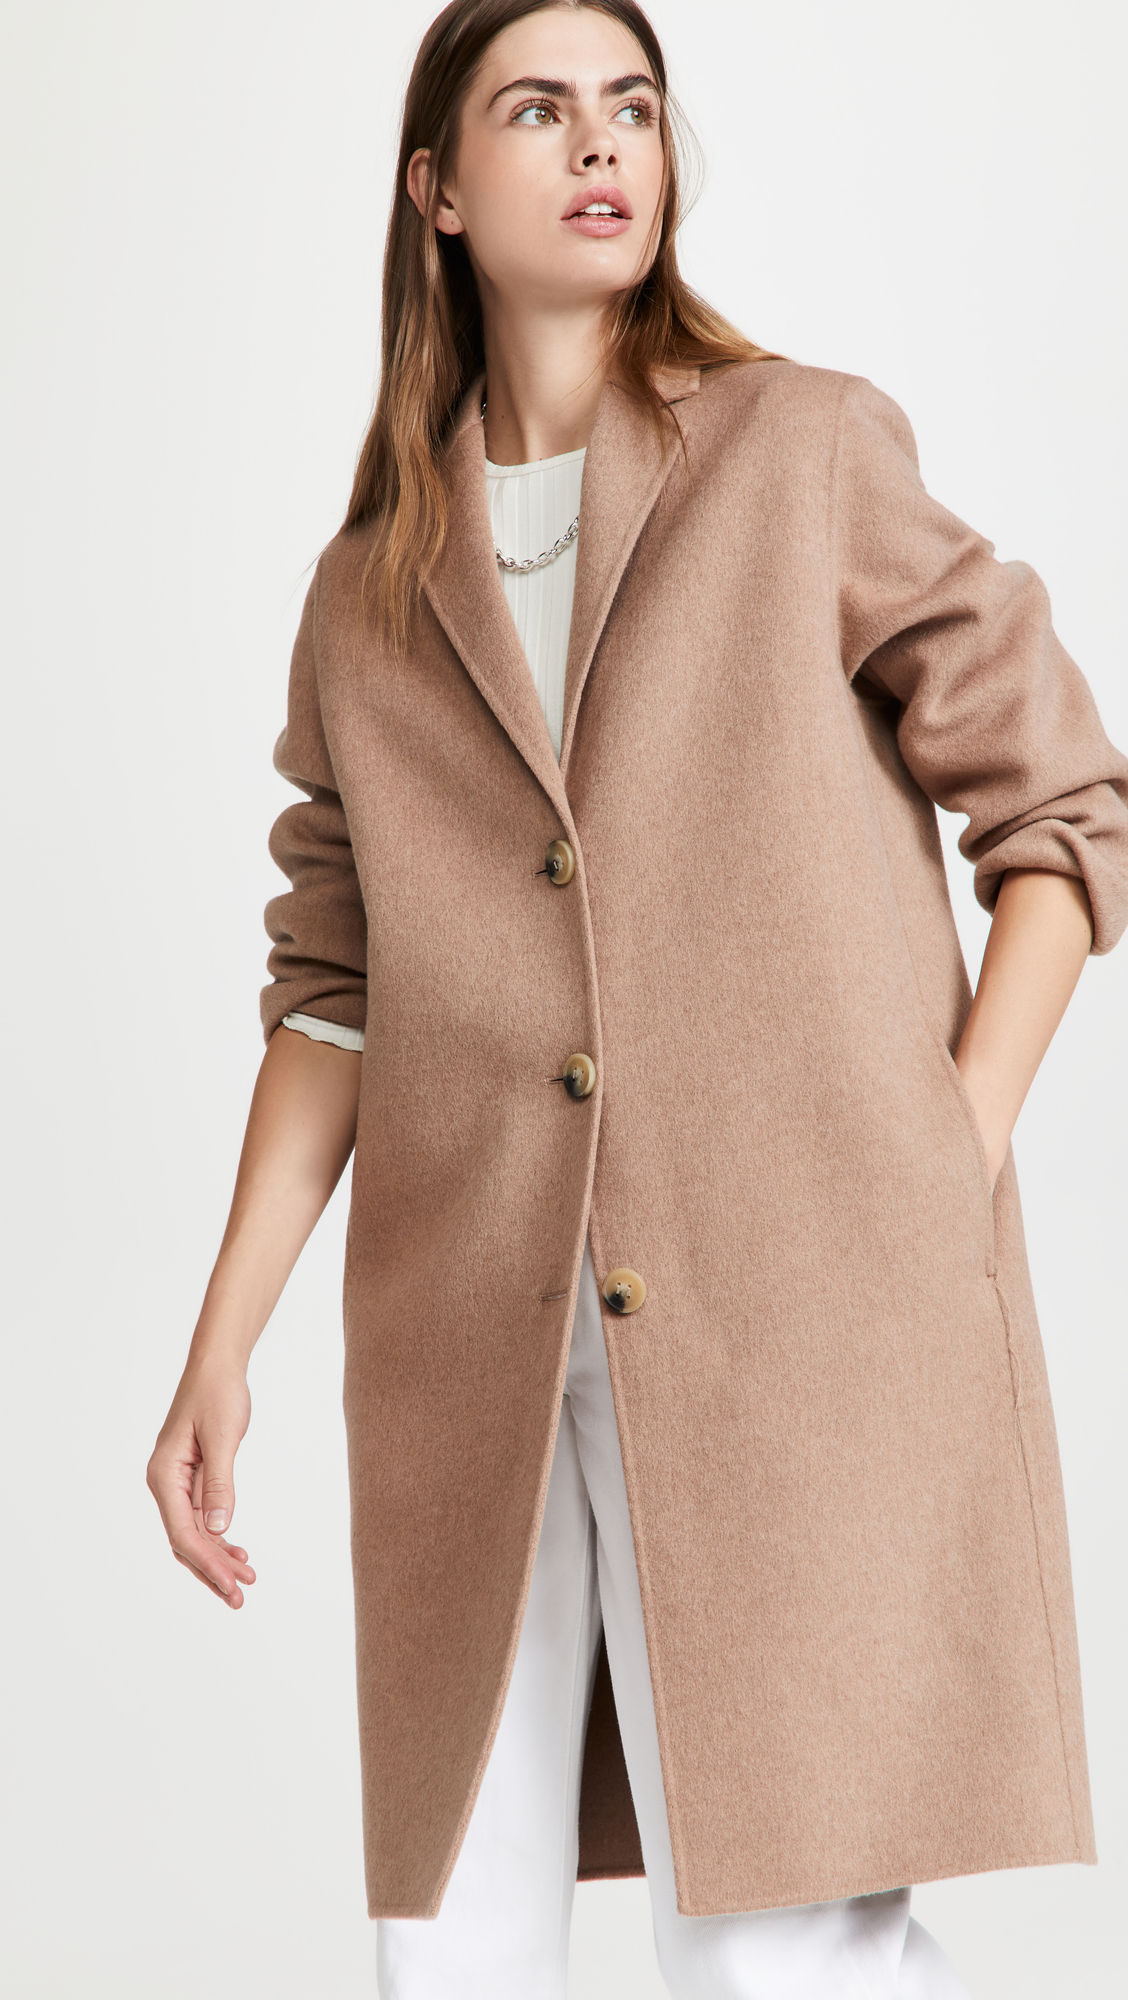 woman wearing Acne Studios Camel Jacket  from The Shopbop Style Event Sale